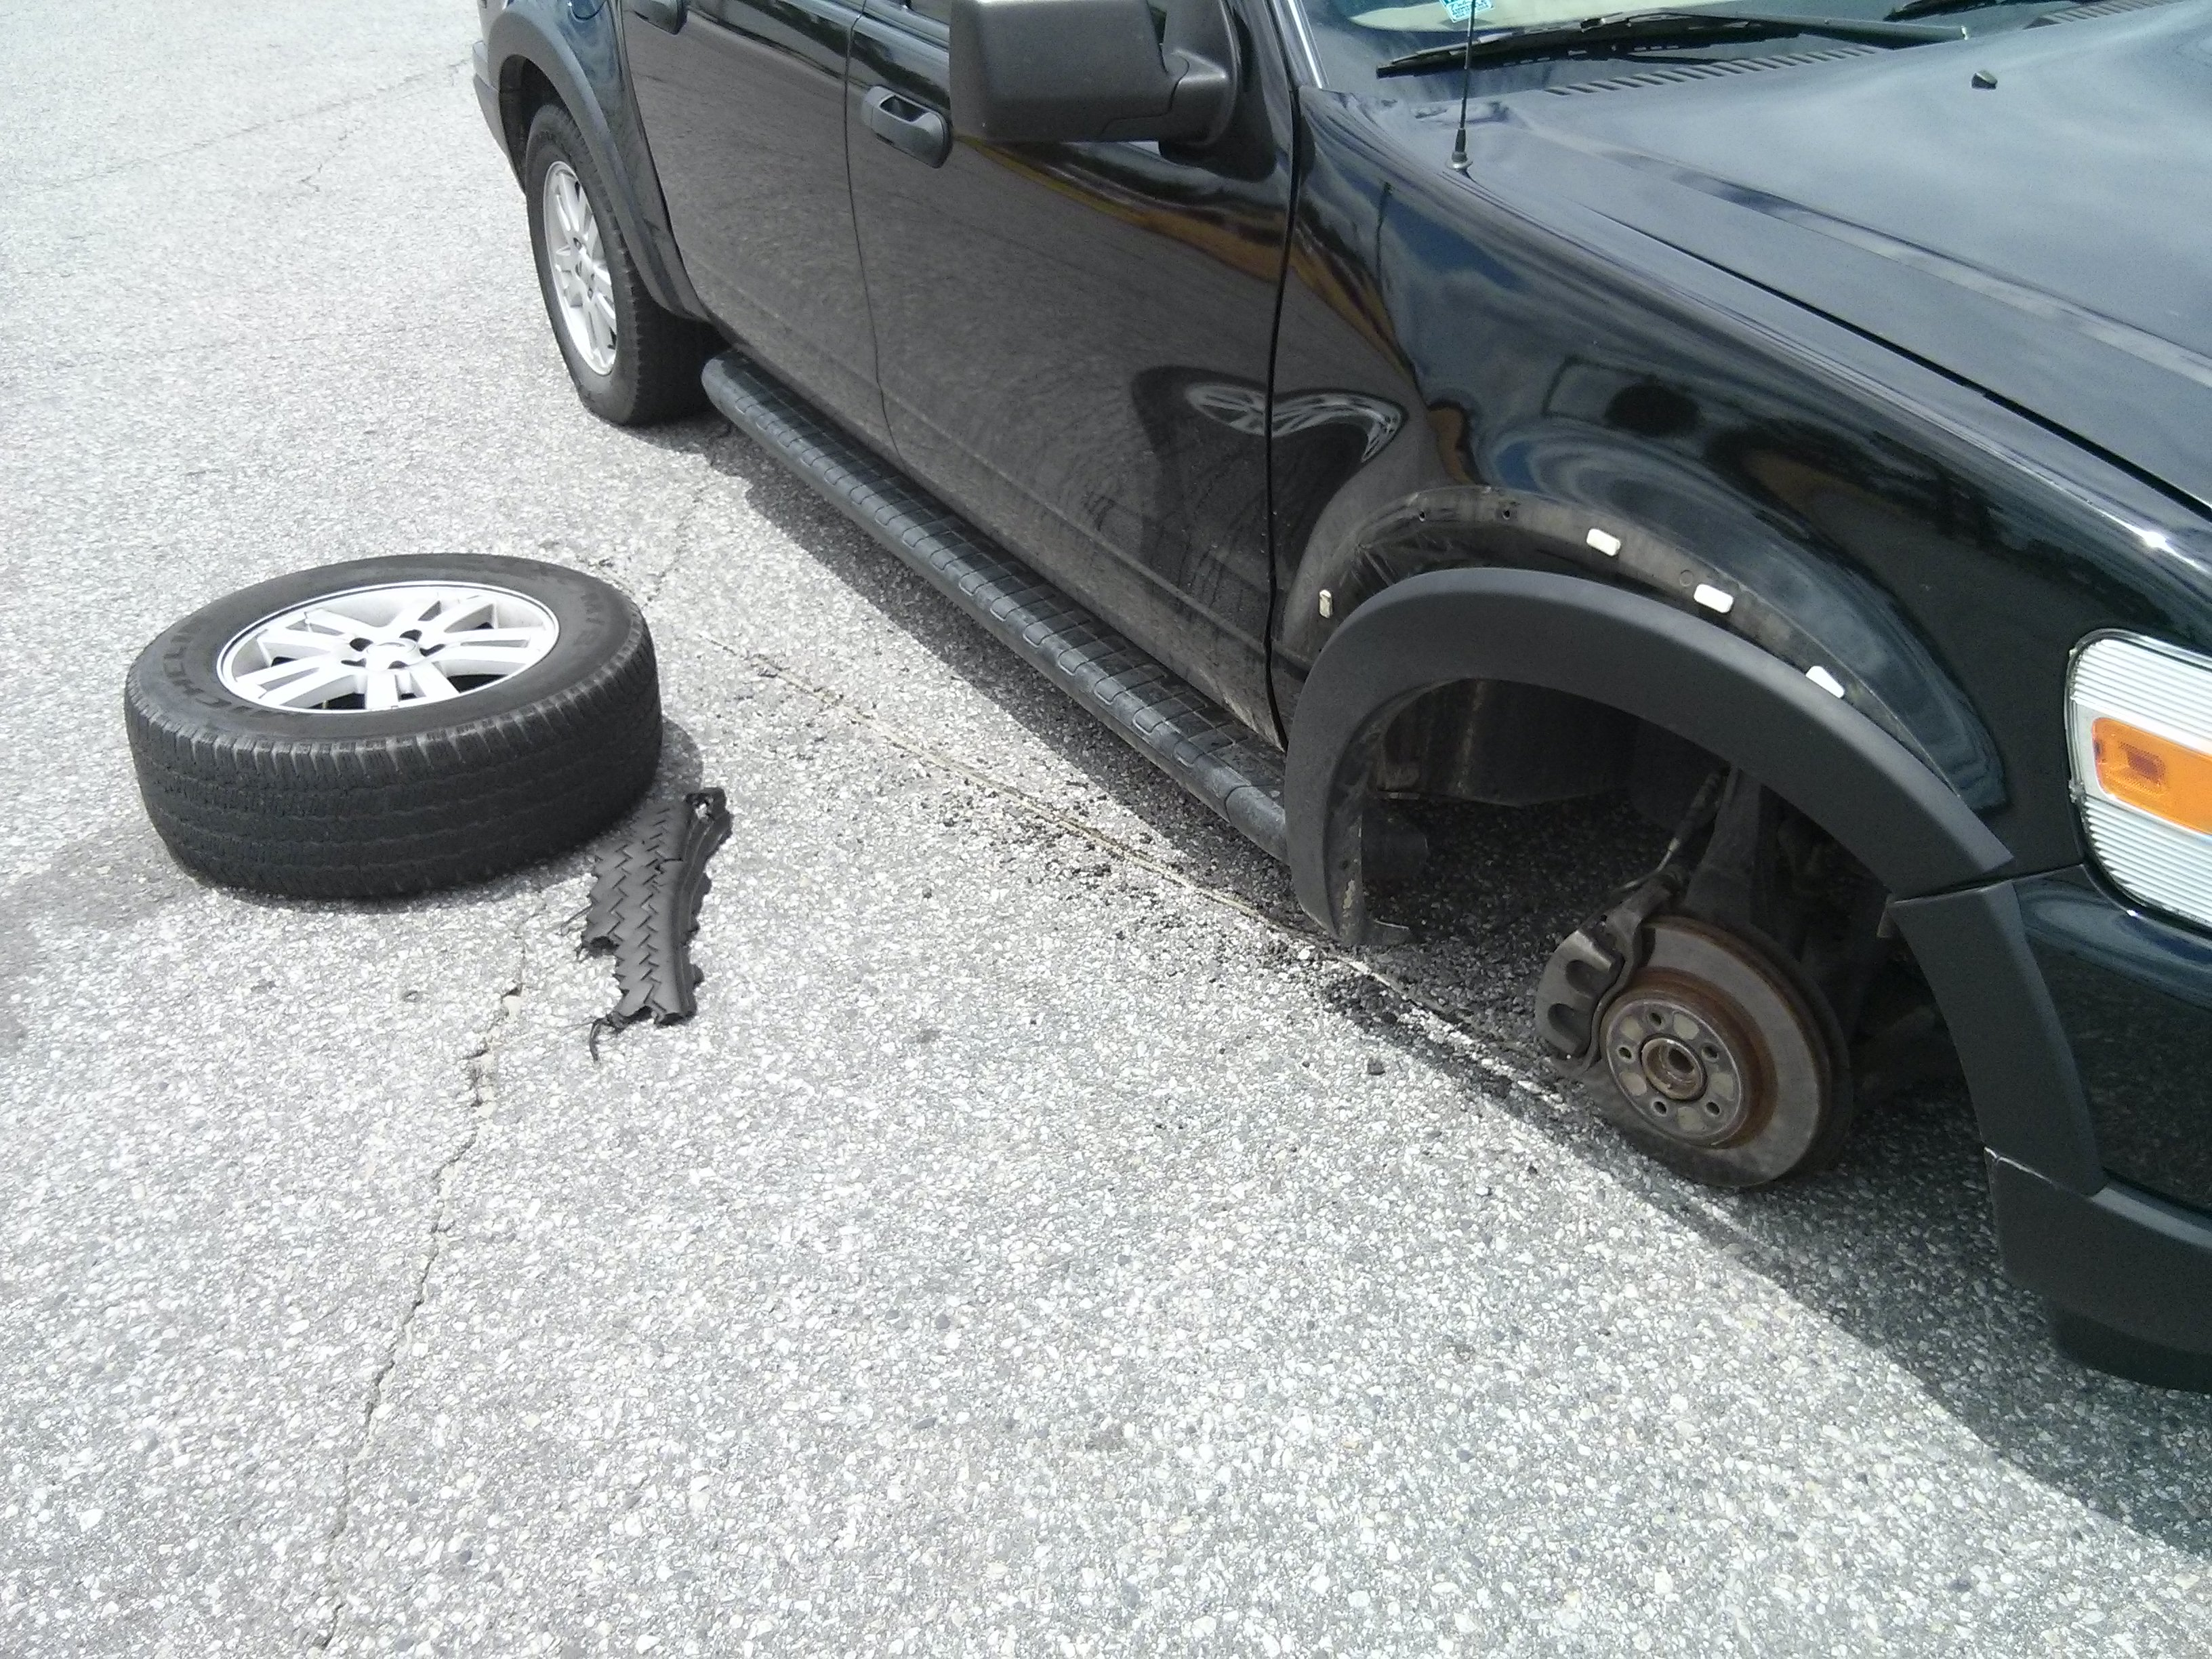 A dark truck missing a front right tire has left gouge marks in an asphalt surface, and the shredded front right tire sits on the ground beside it.